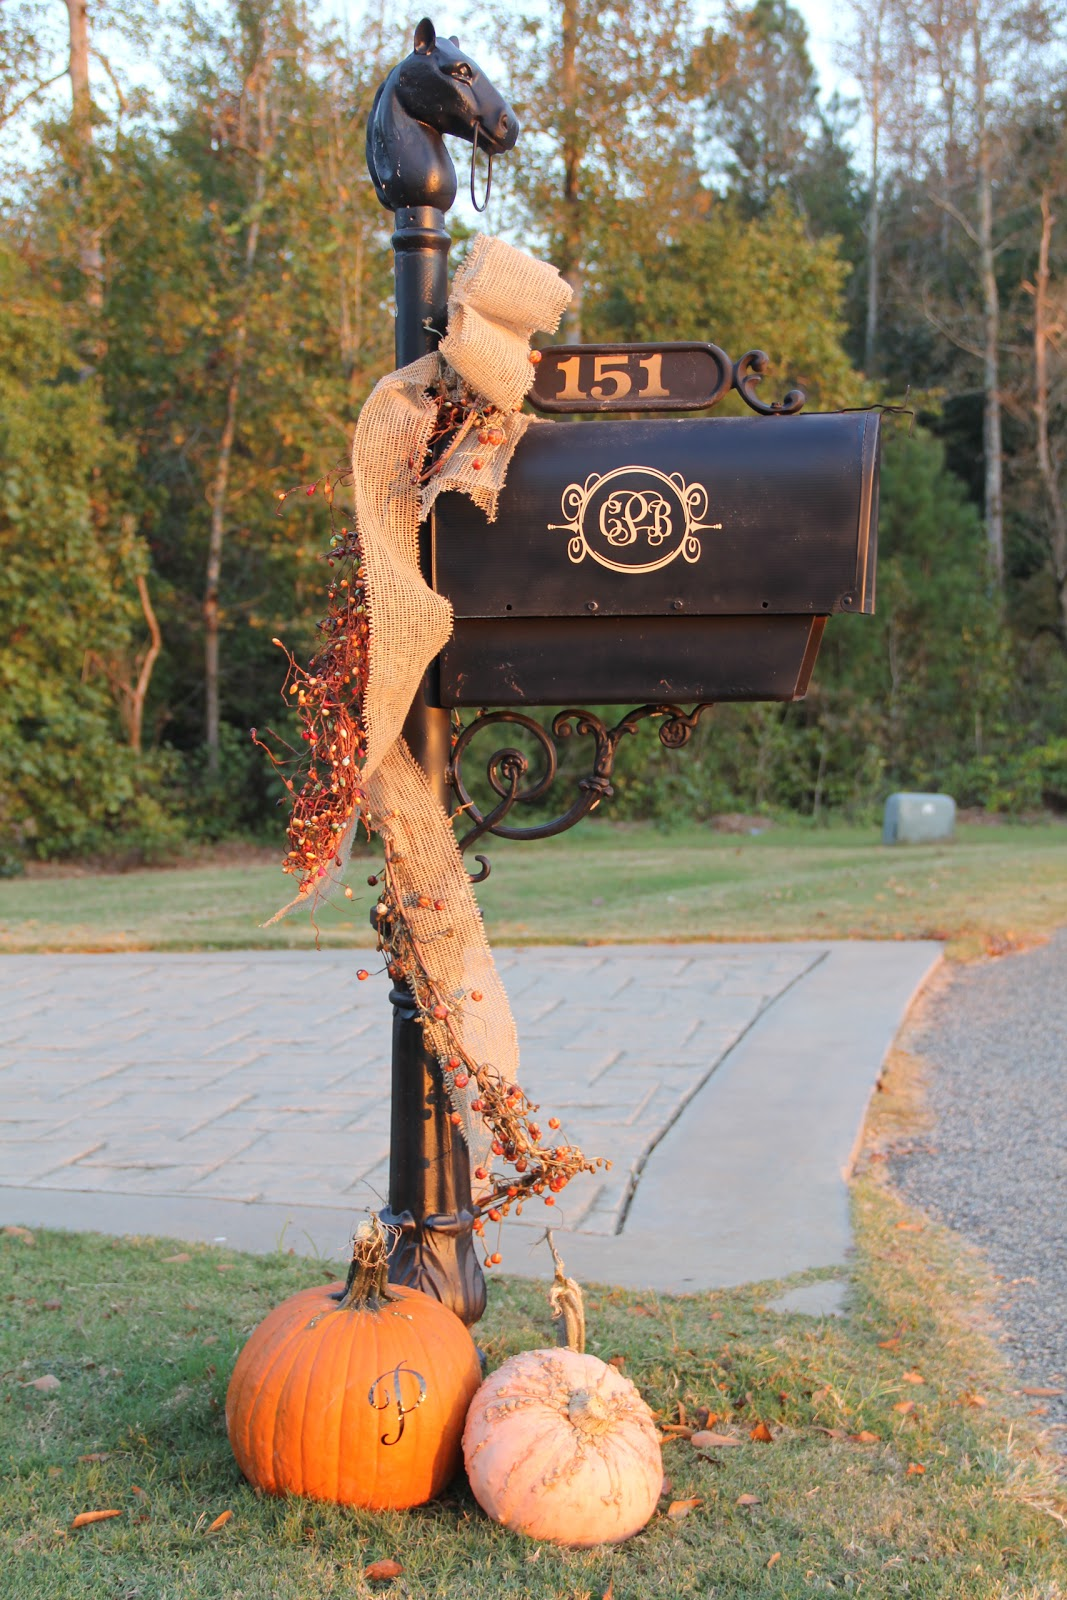 Decorating Blogs Southern Southern Soul Mates Fall Decor Want Your Input